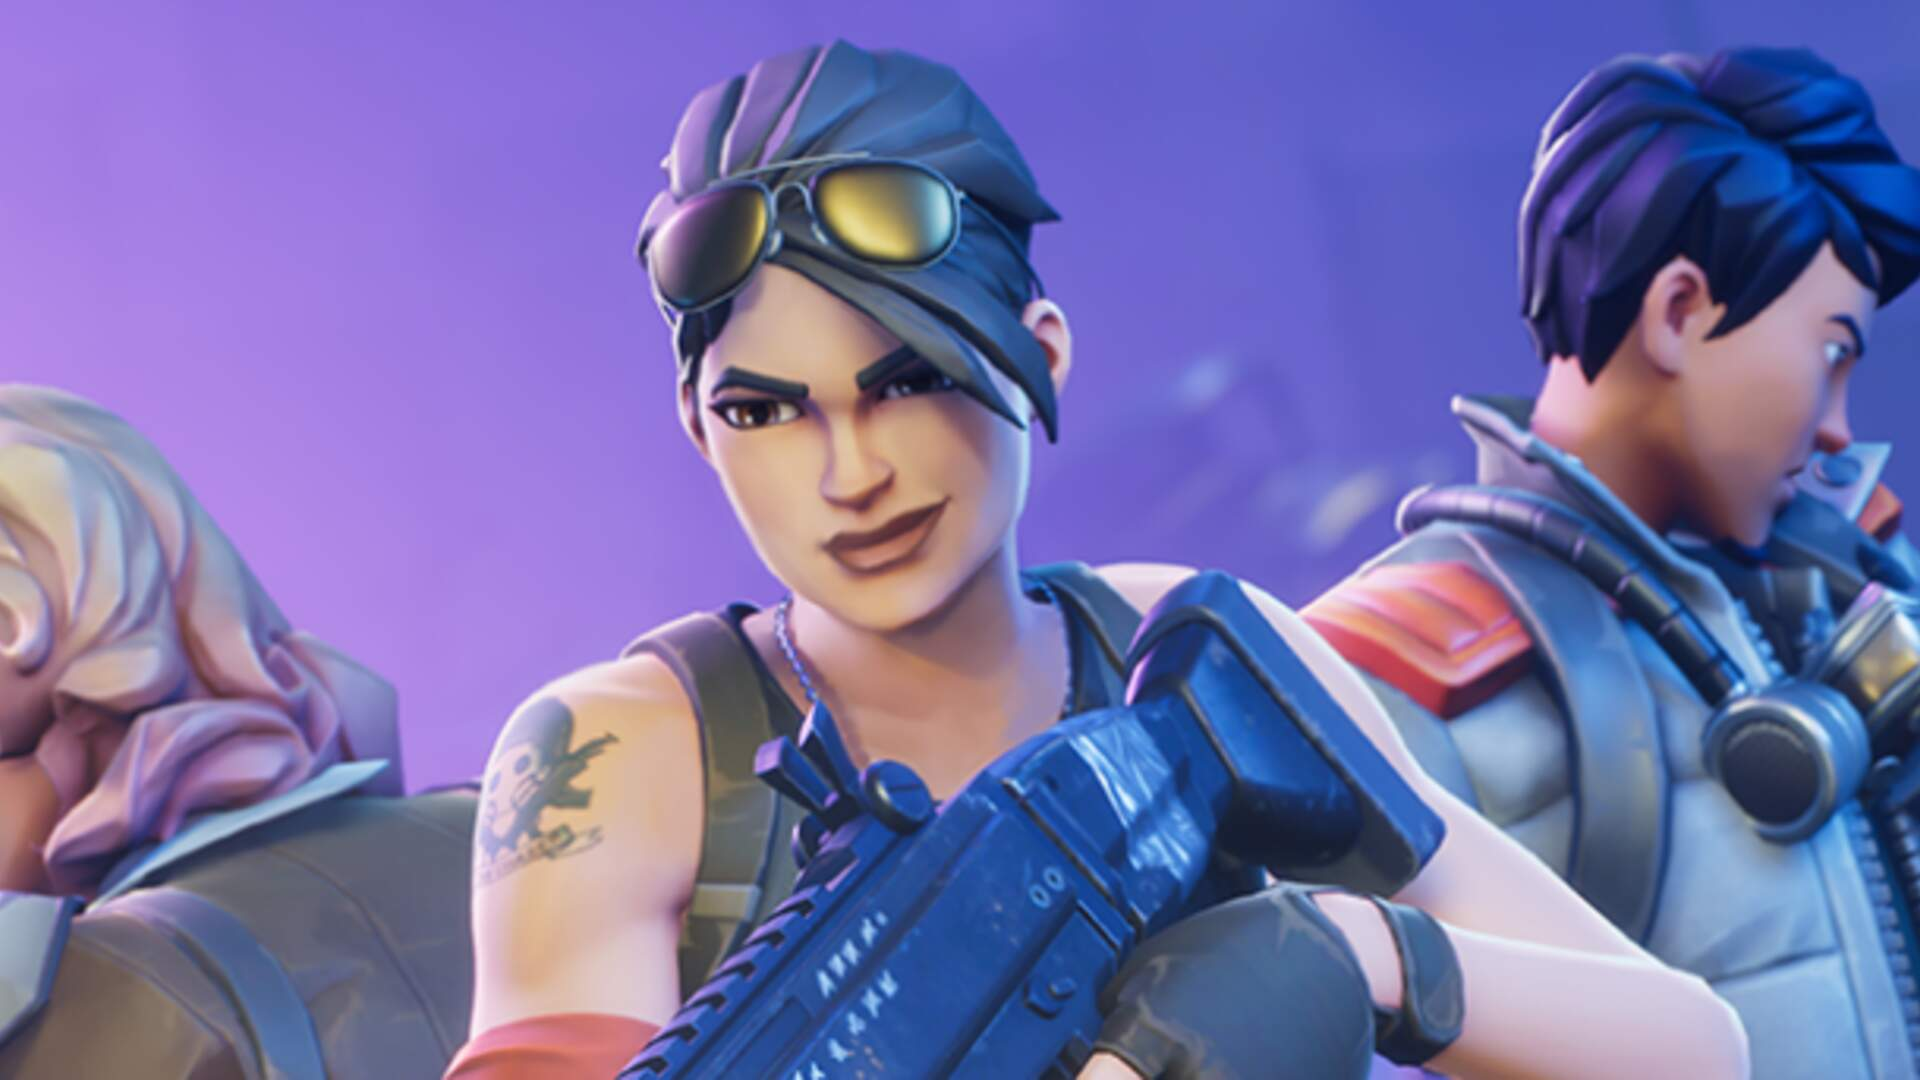 Fortnite Alpha Tournament Guide - Start Times, Pin Reward, How to Earn Points